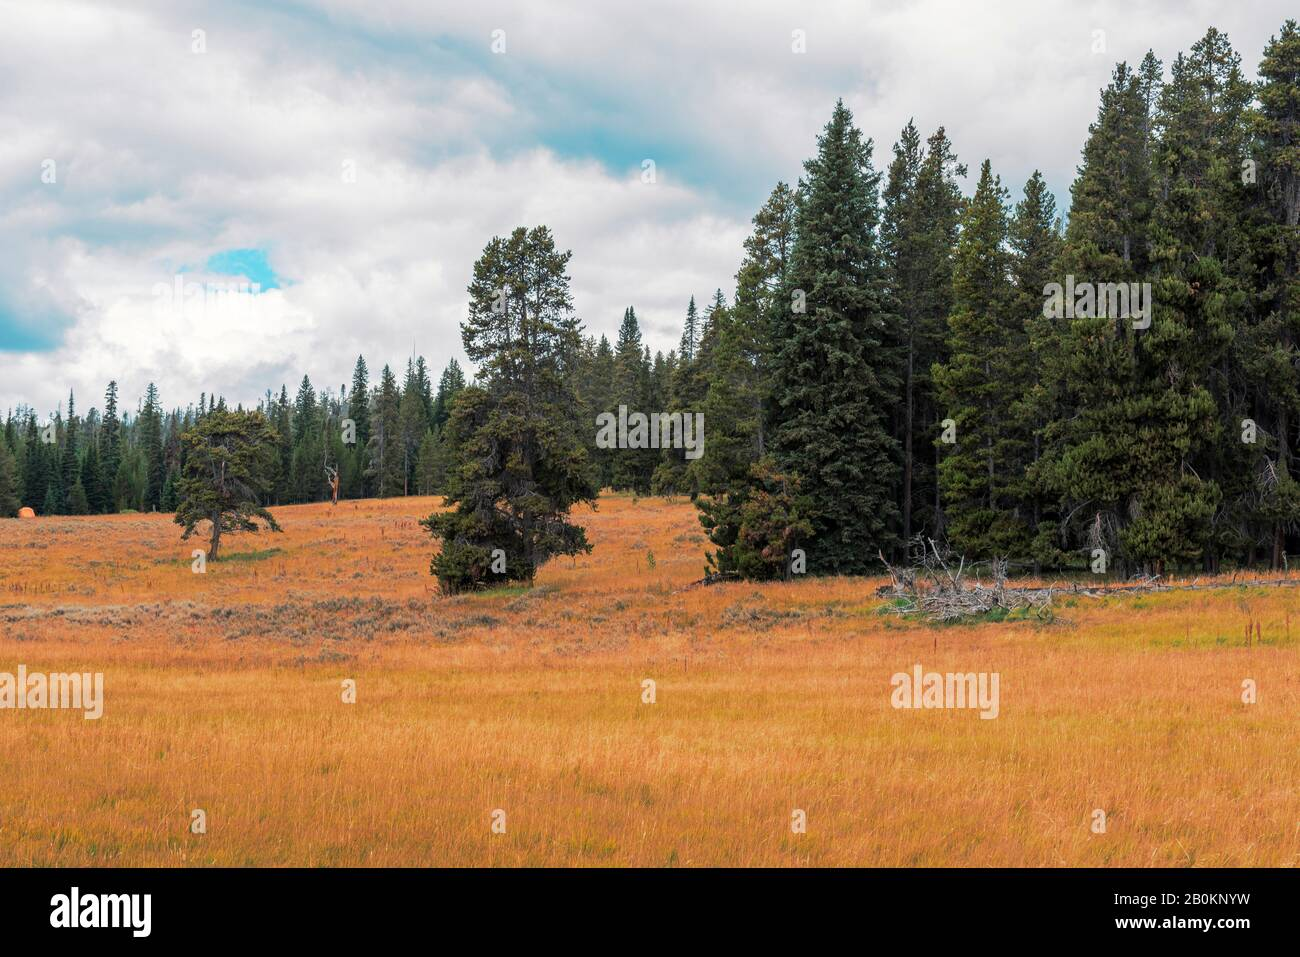 Golden grassy meadows, green pines and forest under a blue sky with white clouds. Stock Photo